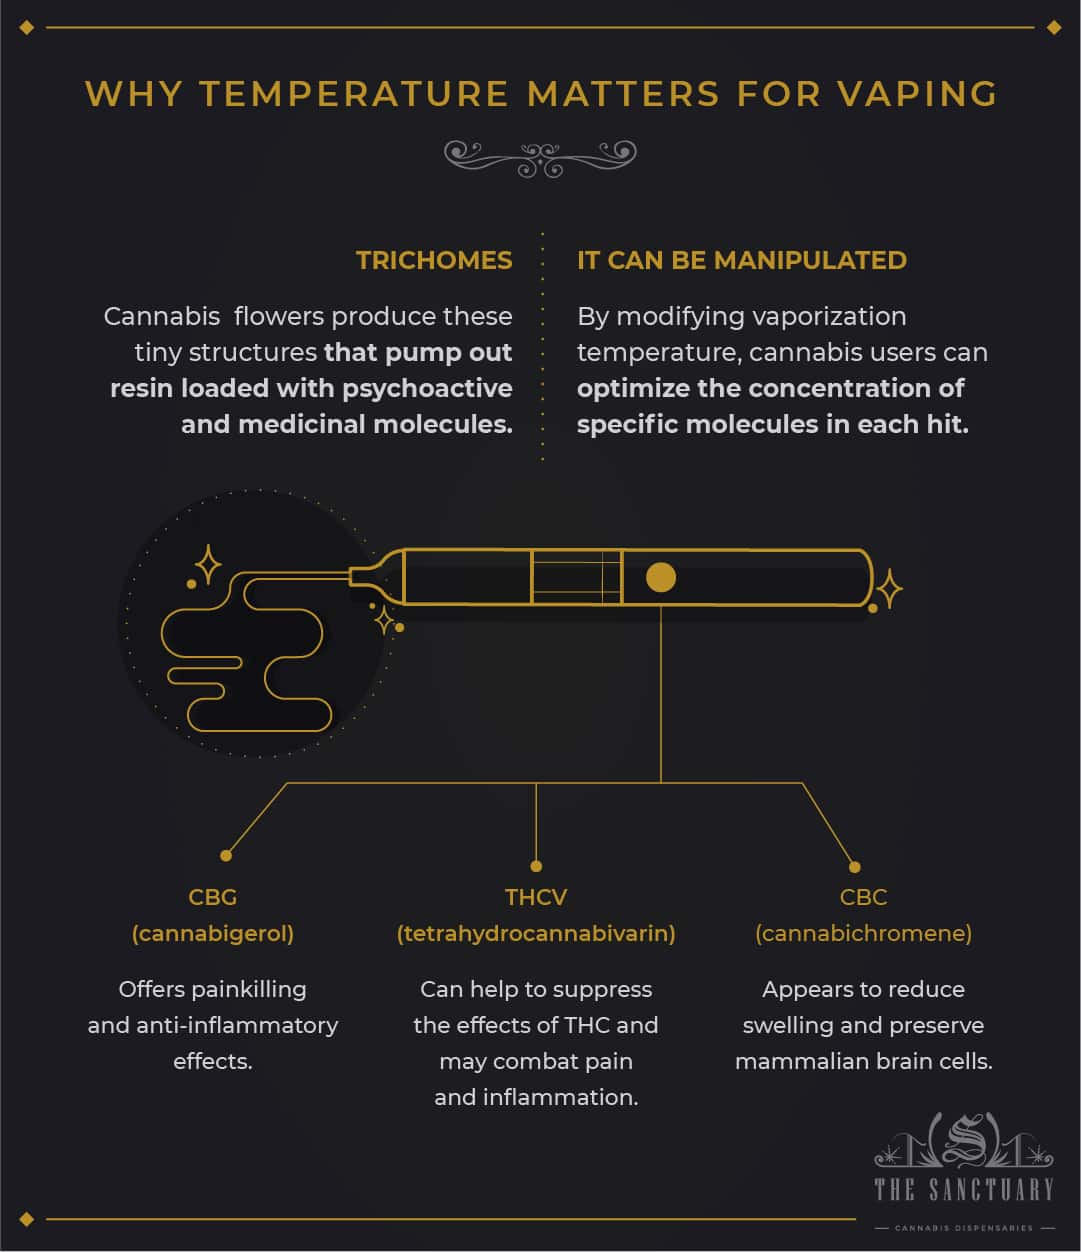 Why temperature matters for vaping